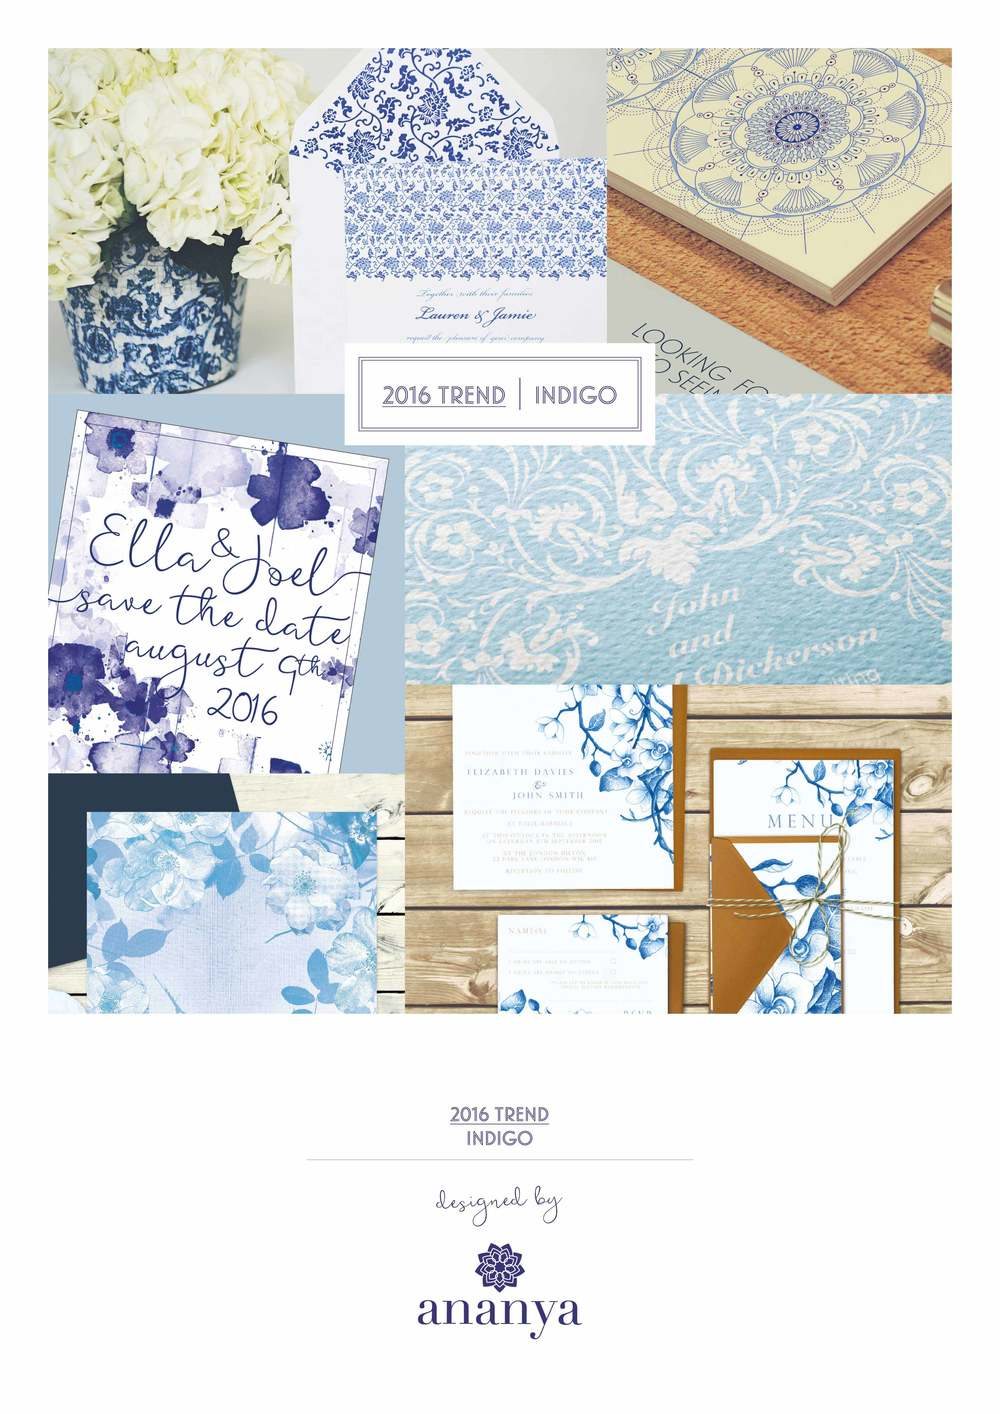 Beautiful Wedding Invitations using 2016 Indigo trend by Ananaya